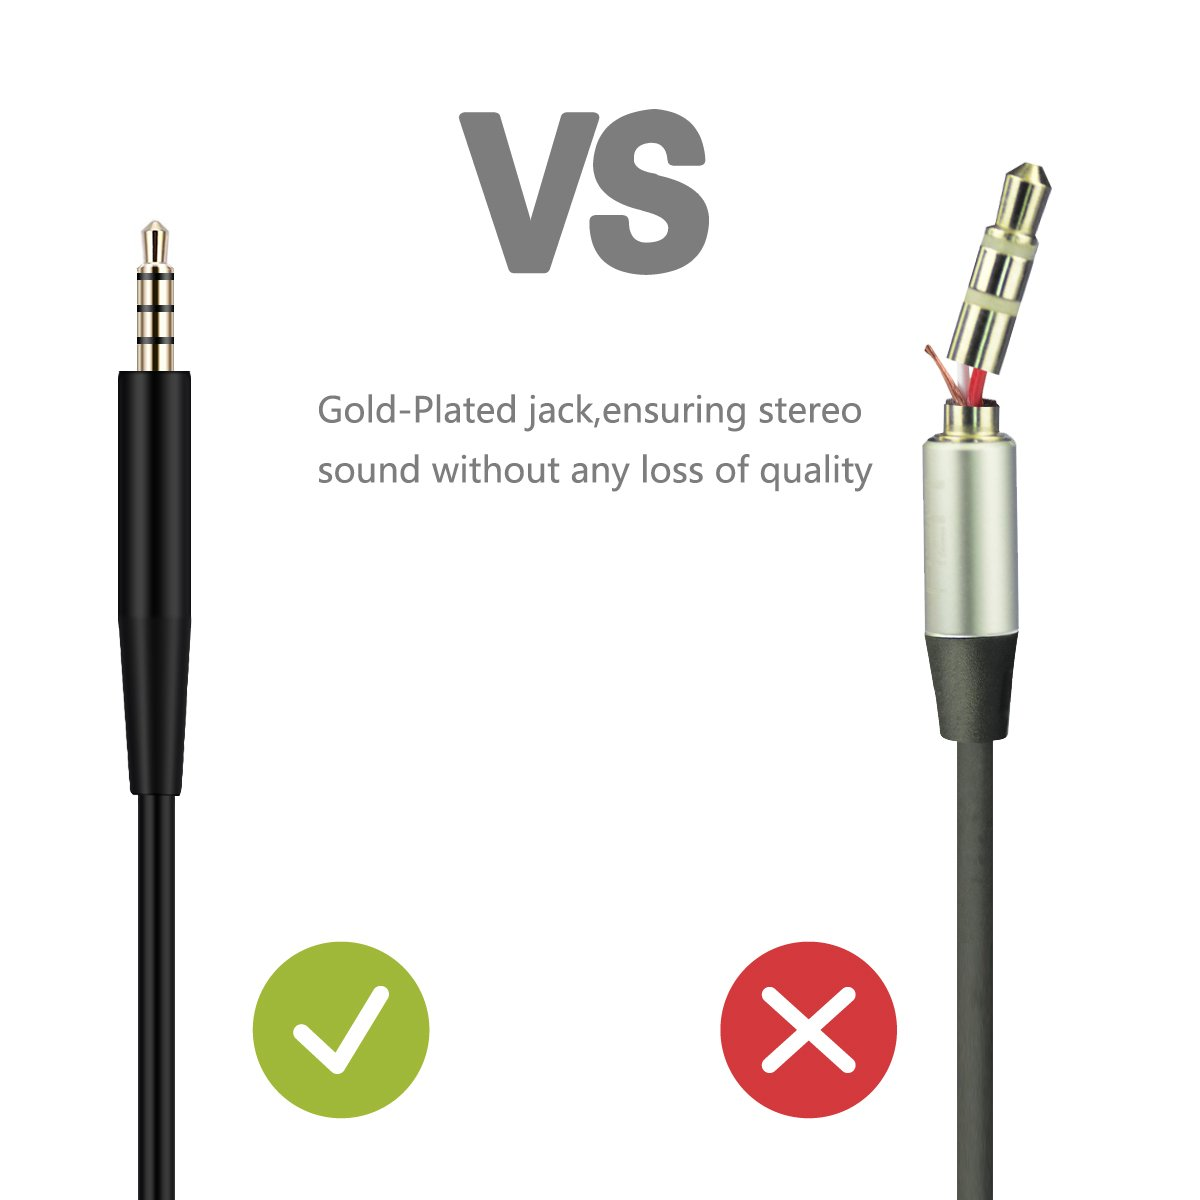 Speakers // 3.5mm Male to Female Replacement Stereo Audio Cable Earphone Headphones Extension Cable Cord Line Compatible with Bose On-Ear Headphones 20FT